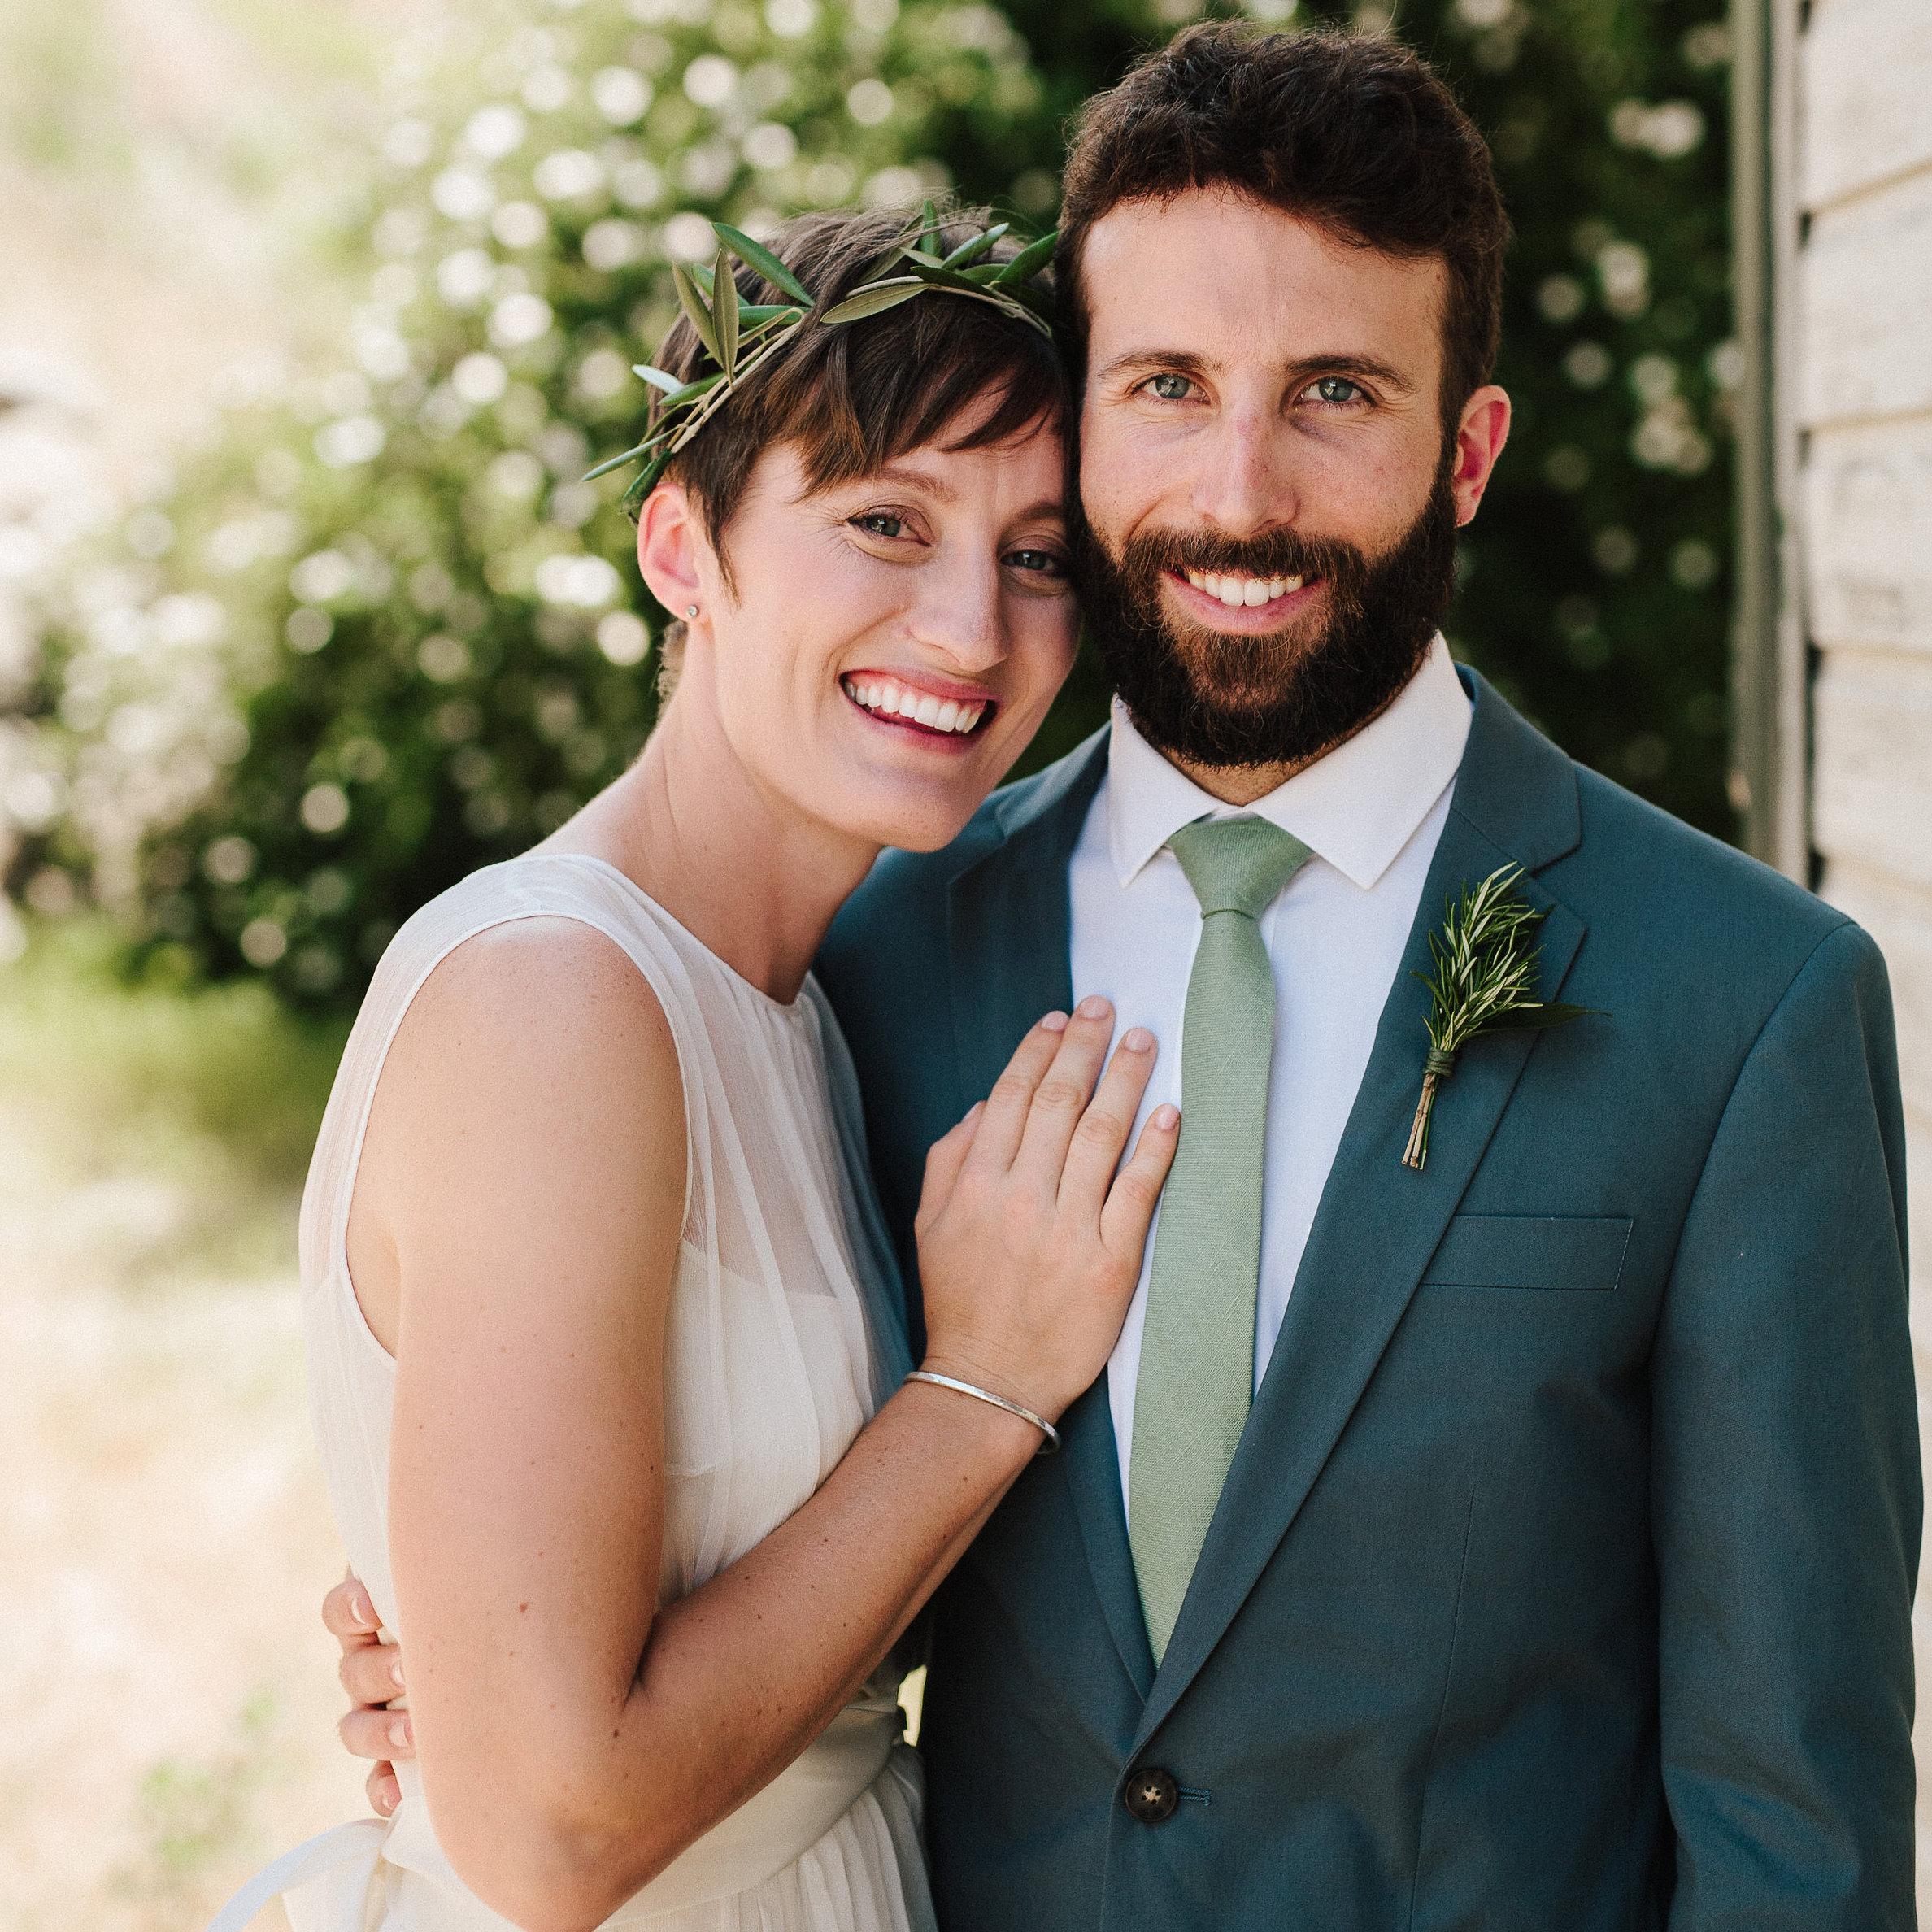 Erin and Tom, Ira and Lucy Boise Wedding Planner, Victoria Greener Photography